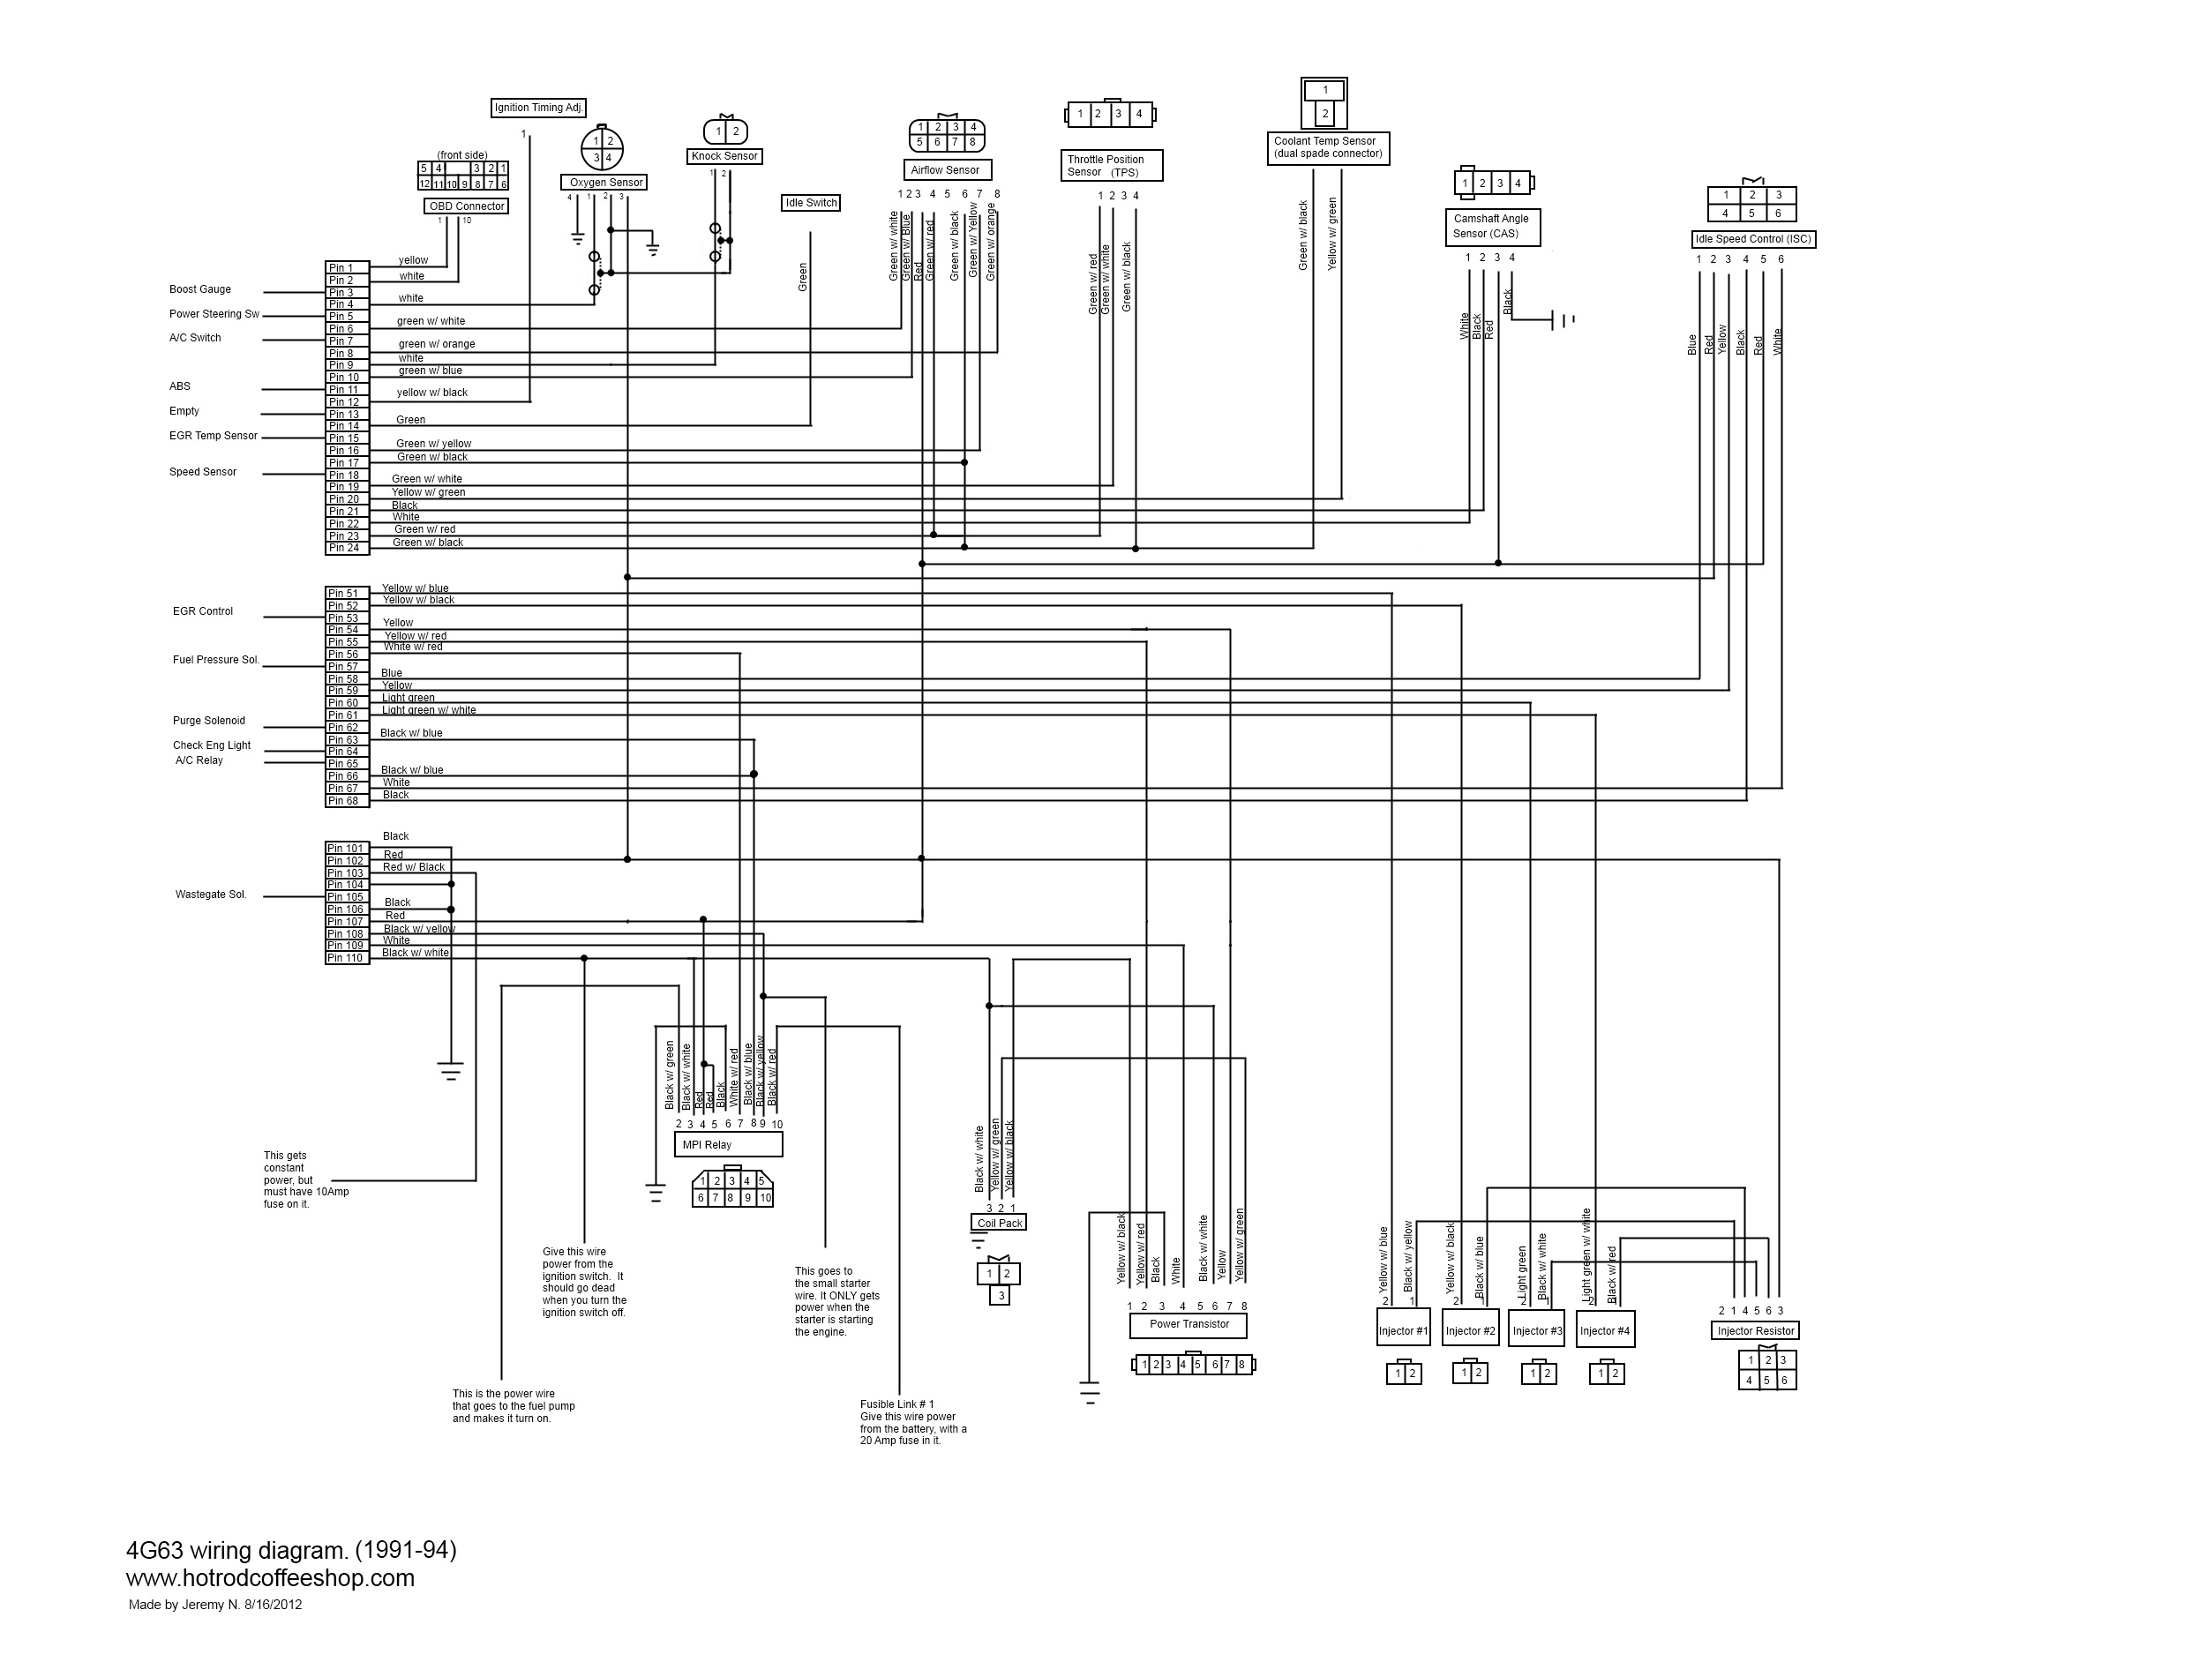 anybody like 4g63 wiring diagrams as much as i do galant vr 4 anybody like 4g63 wiring diagrams as much as i do galant vr 4 > technical discussions galantvr 4 org mitsubishi galant vr4 forum